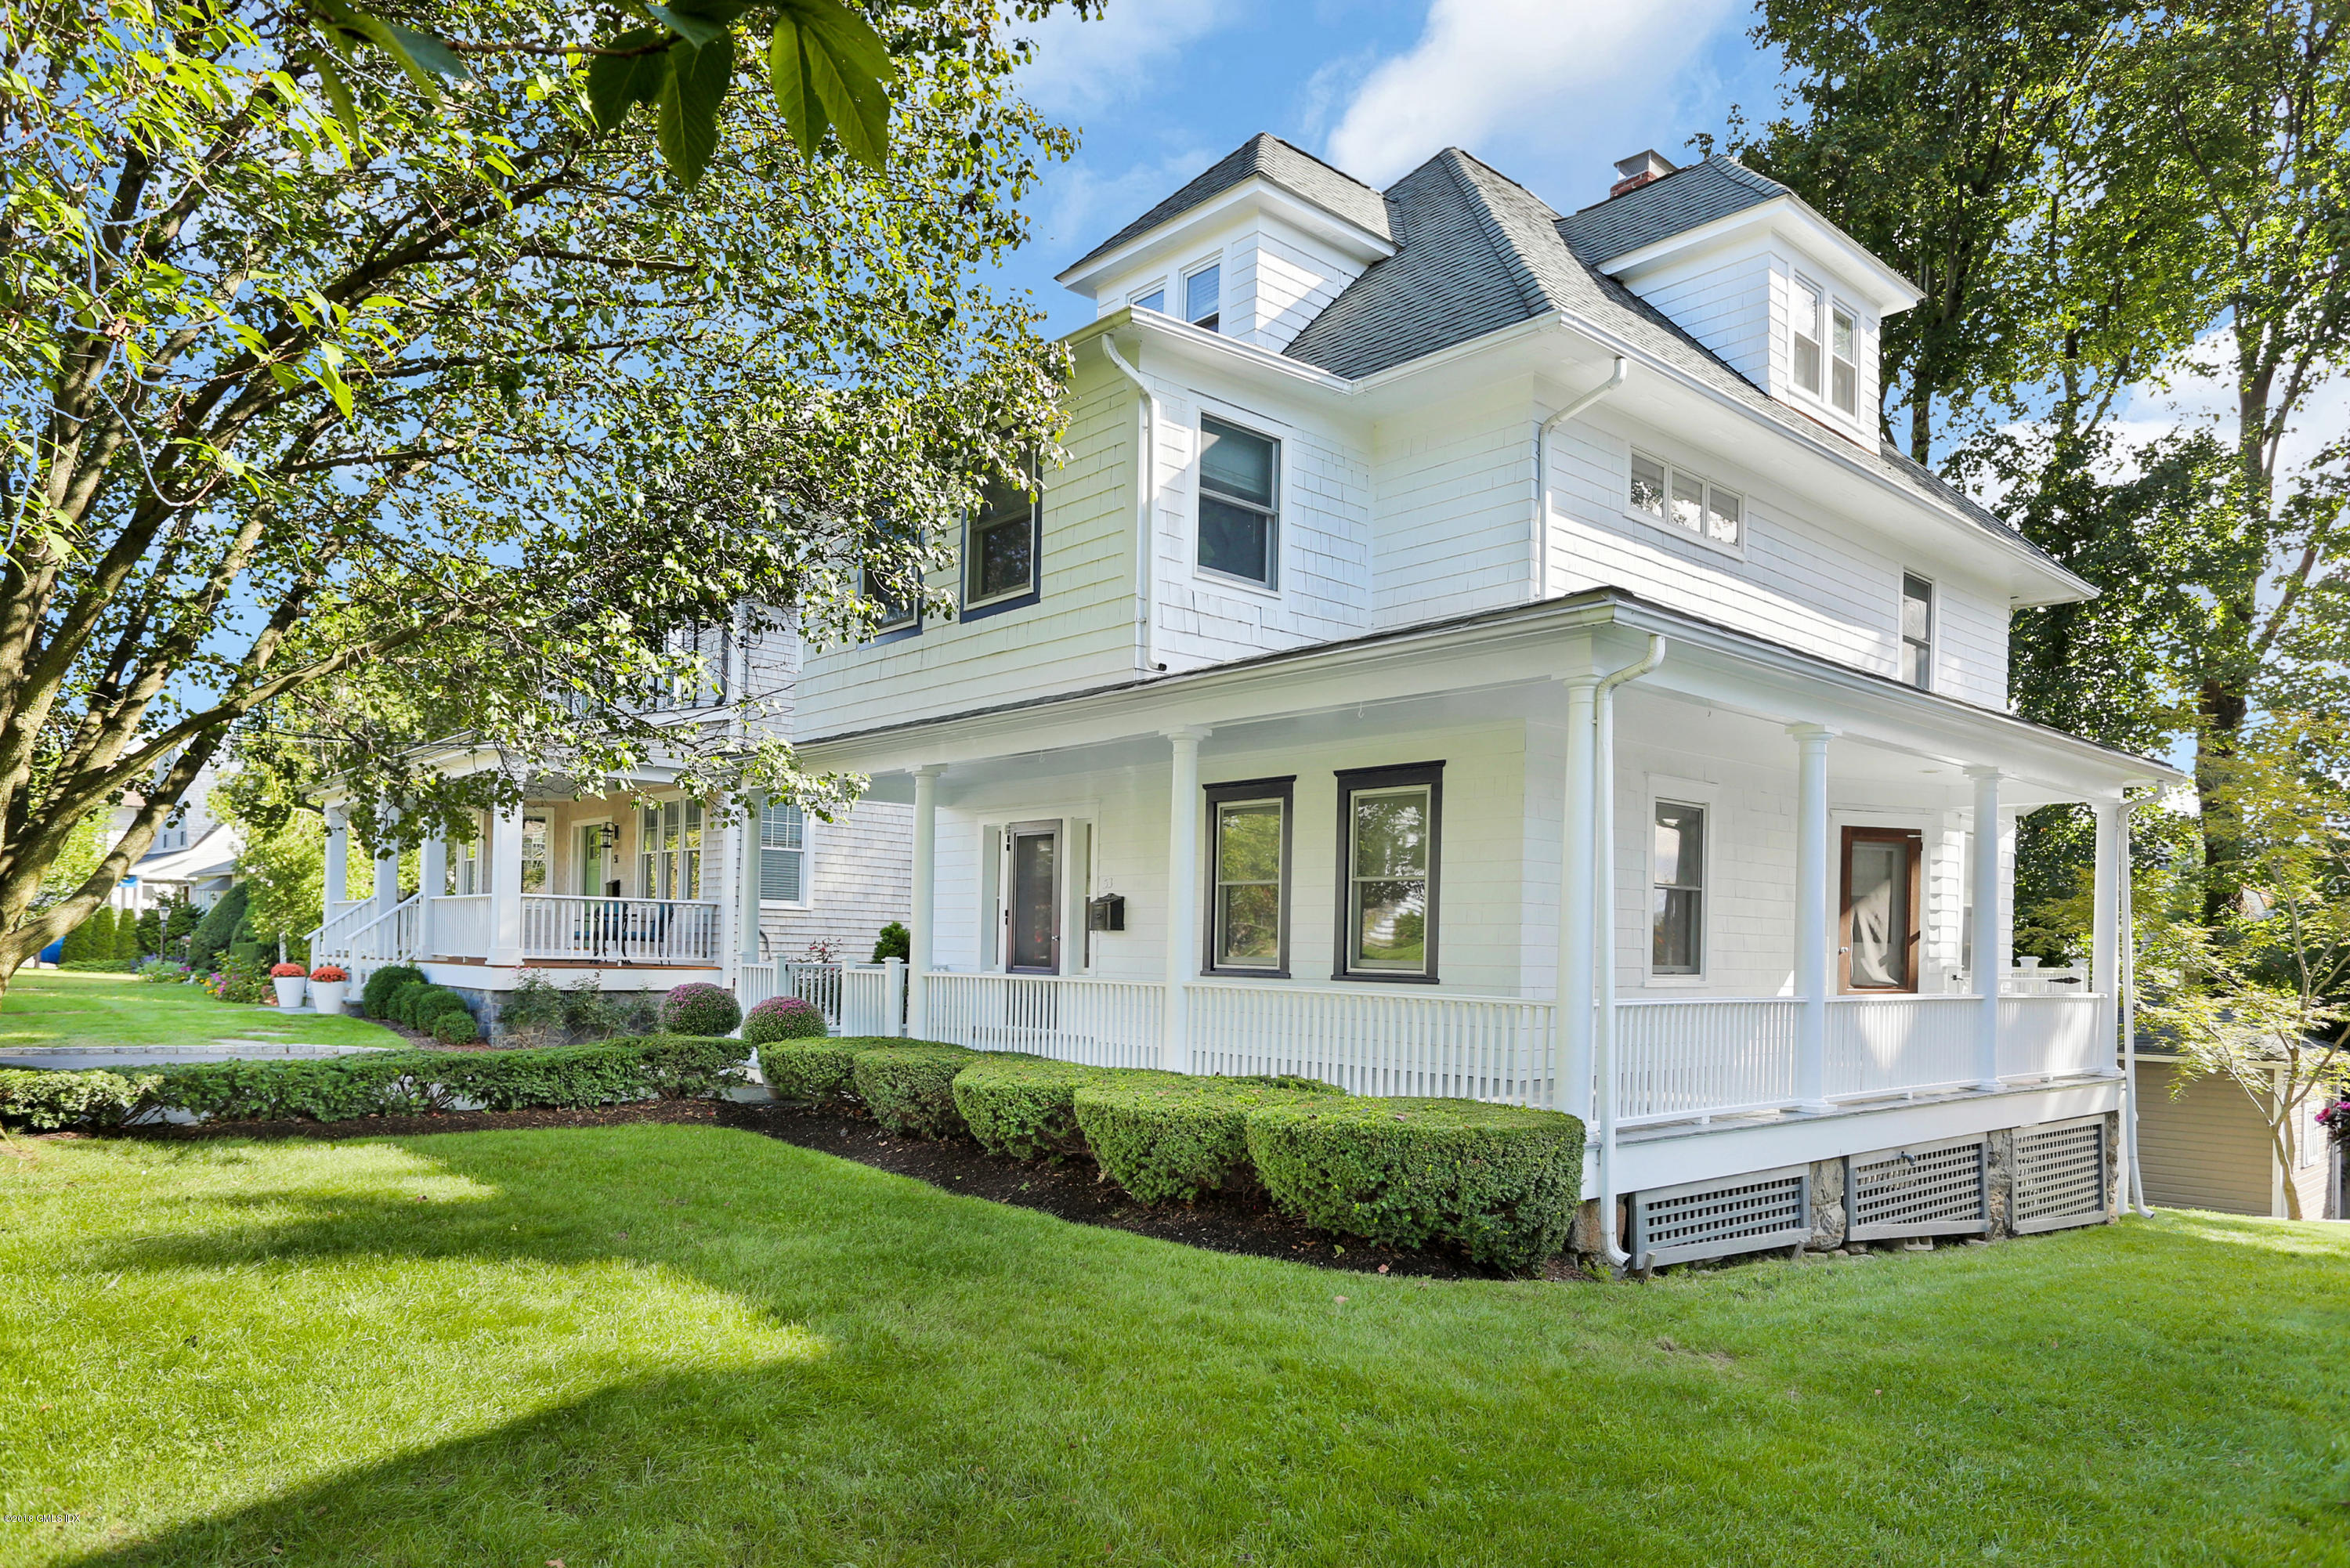 53 Ridge Street,Greenwich,Connecticut 06830,4 Bedrooms Bedrooms,4 BathroomsBathrooms,Single family,Ridge,105111